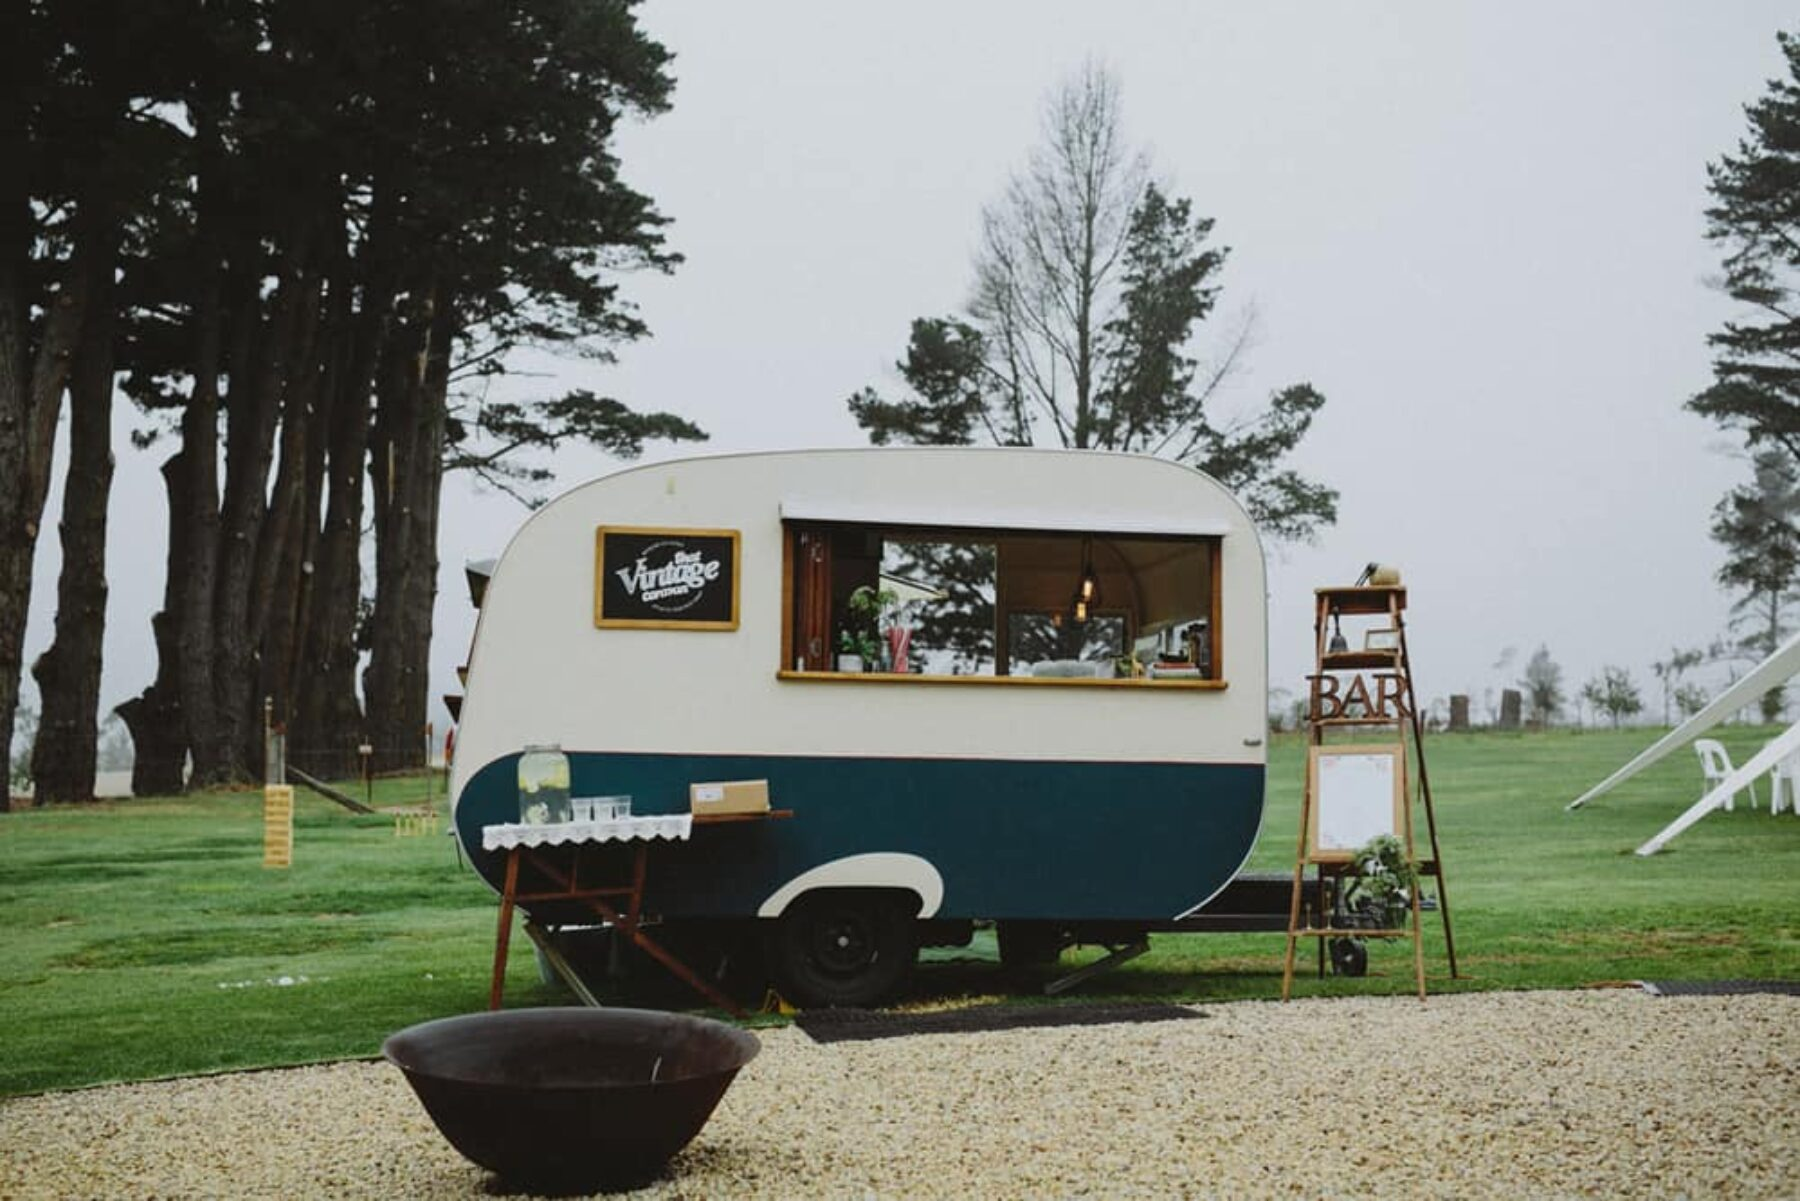 That Vintage Caravan mobile bar